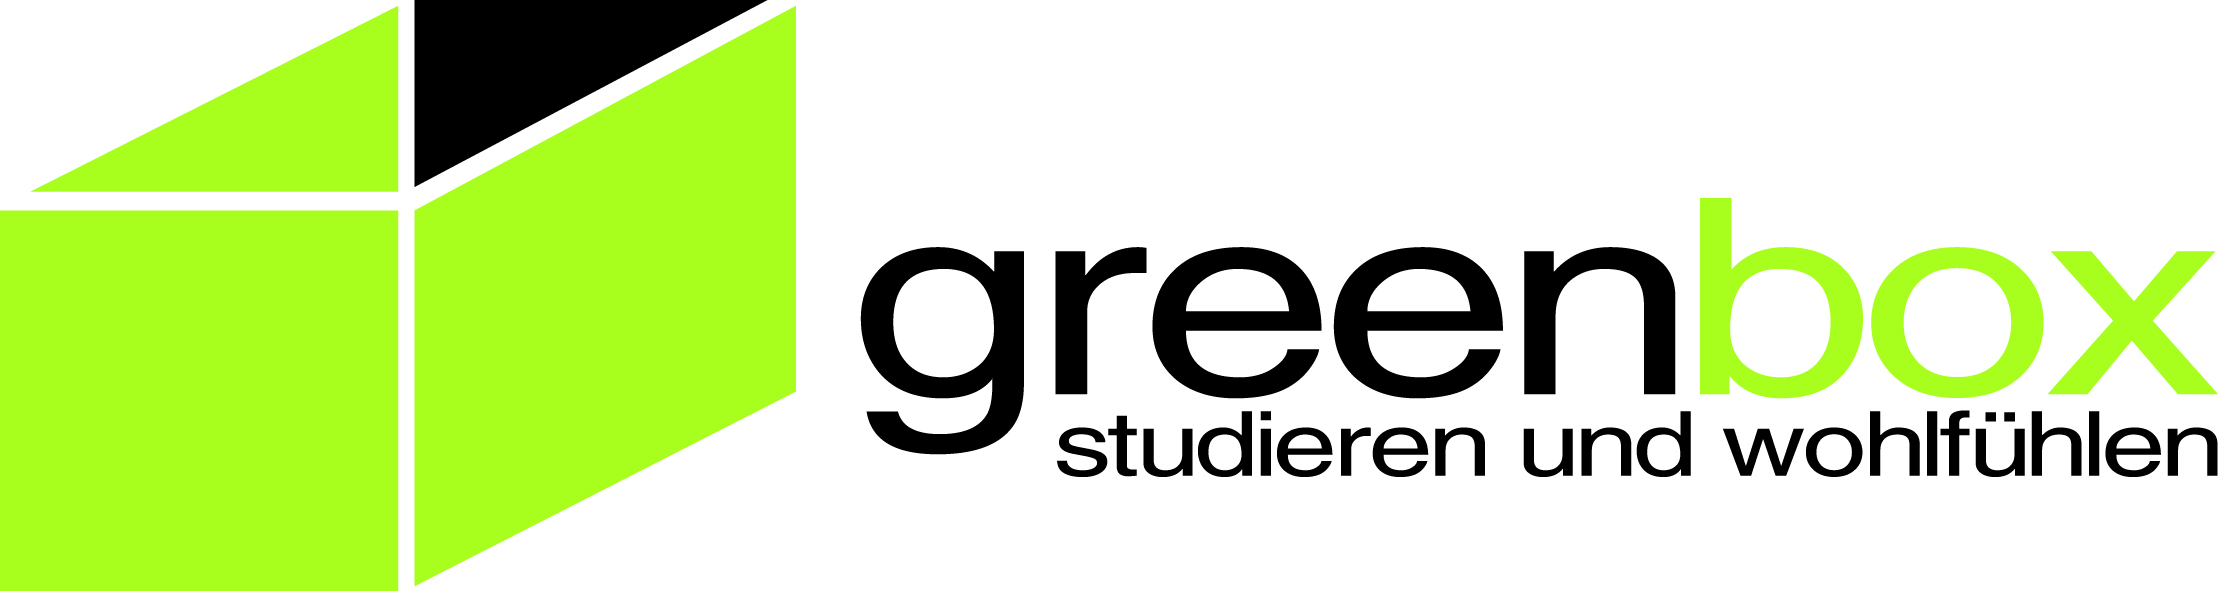 Greenbox Studentenheime